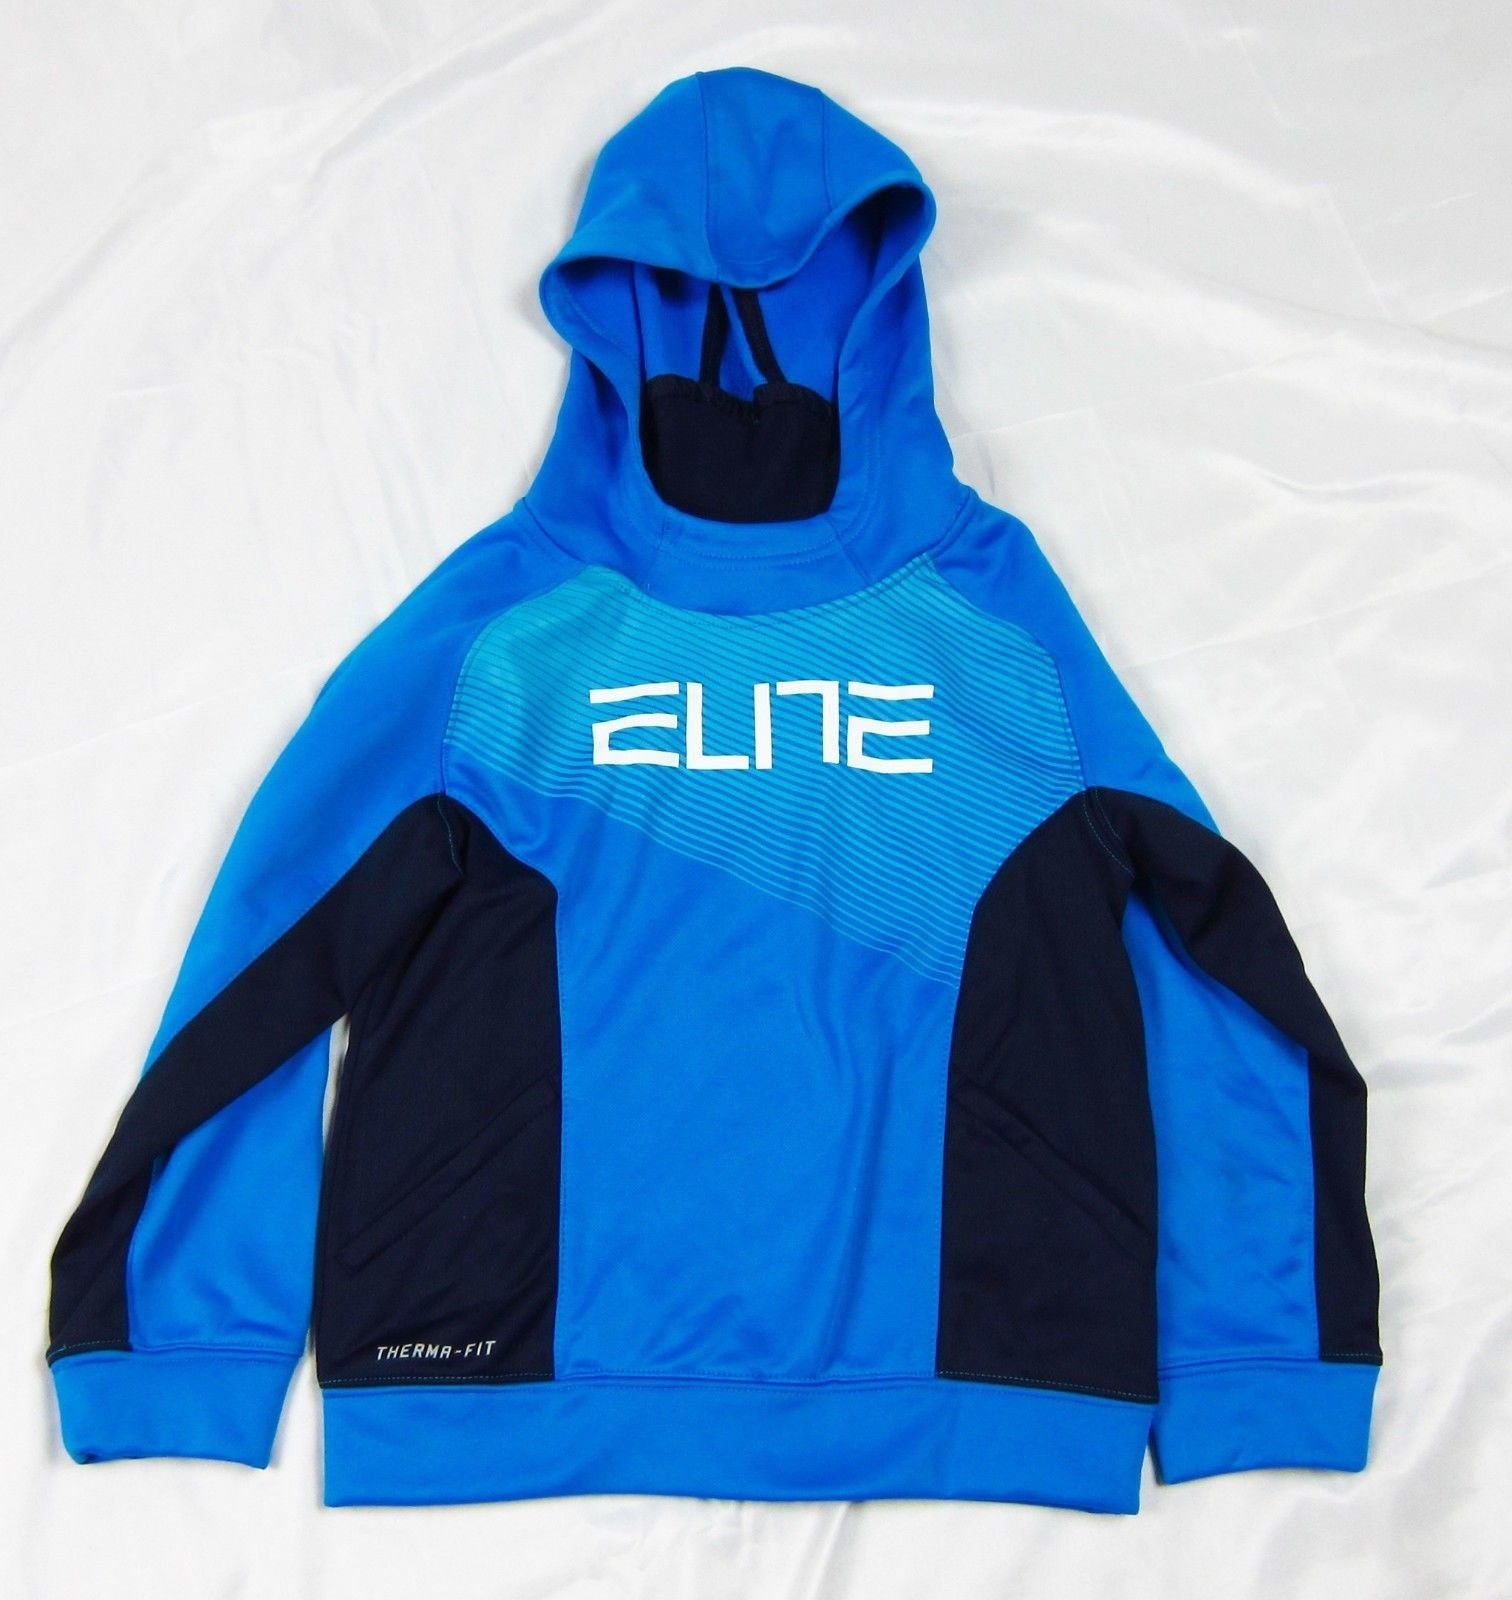 Nike Boys 6 Blue Nike Elite Pullover Hoodie Therma-Fit 100% Polyester f7398856ca5a